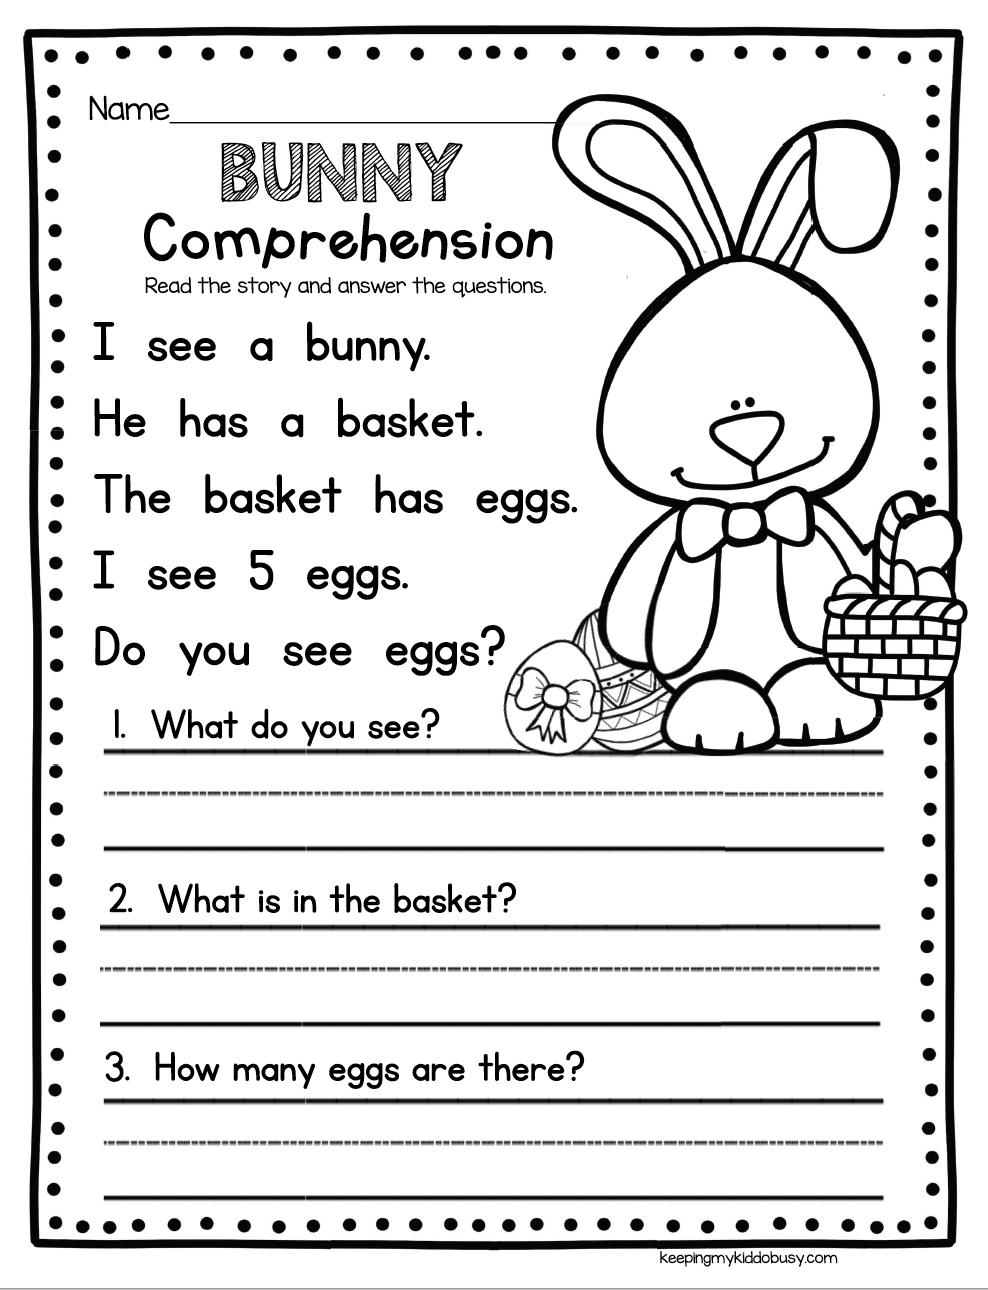 Worksheets Worksheet-for-kindergarten april in kindergarten freebies literacy activities bunny comprehension easy way to practice worksheet activity for